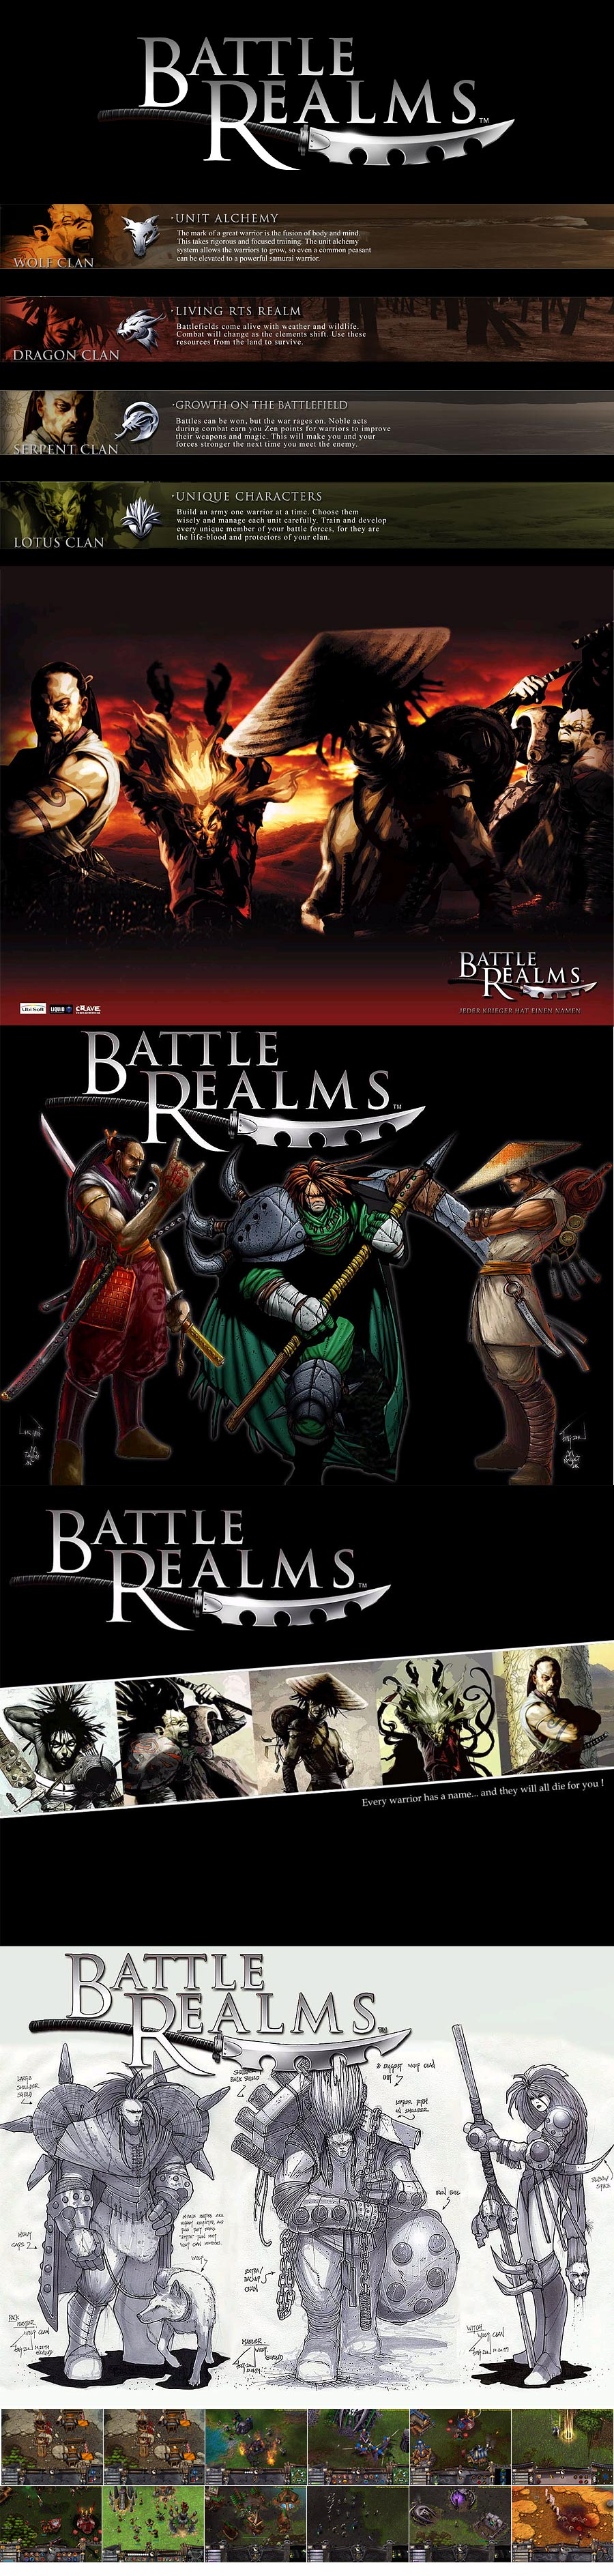 etc_game_BattleRealms